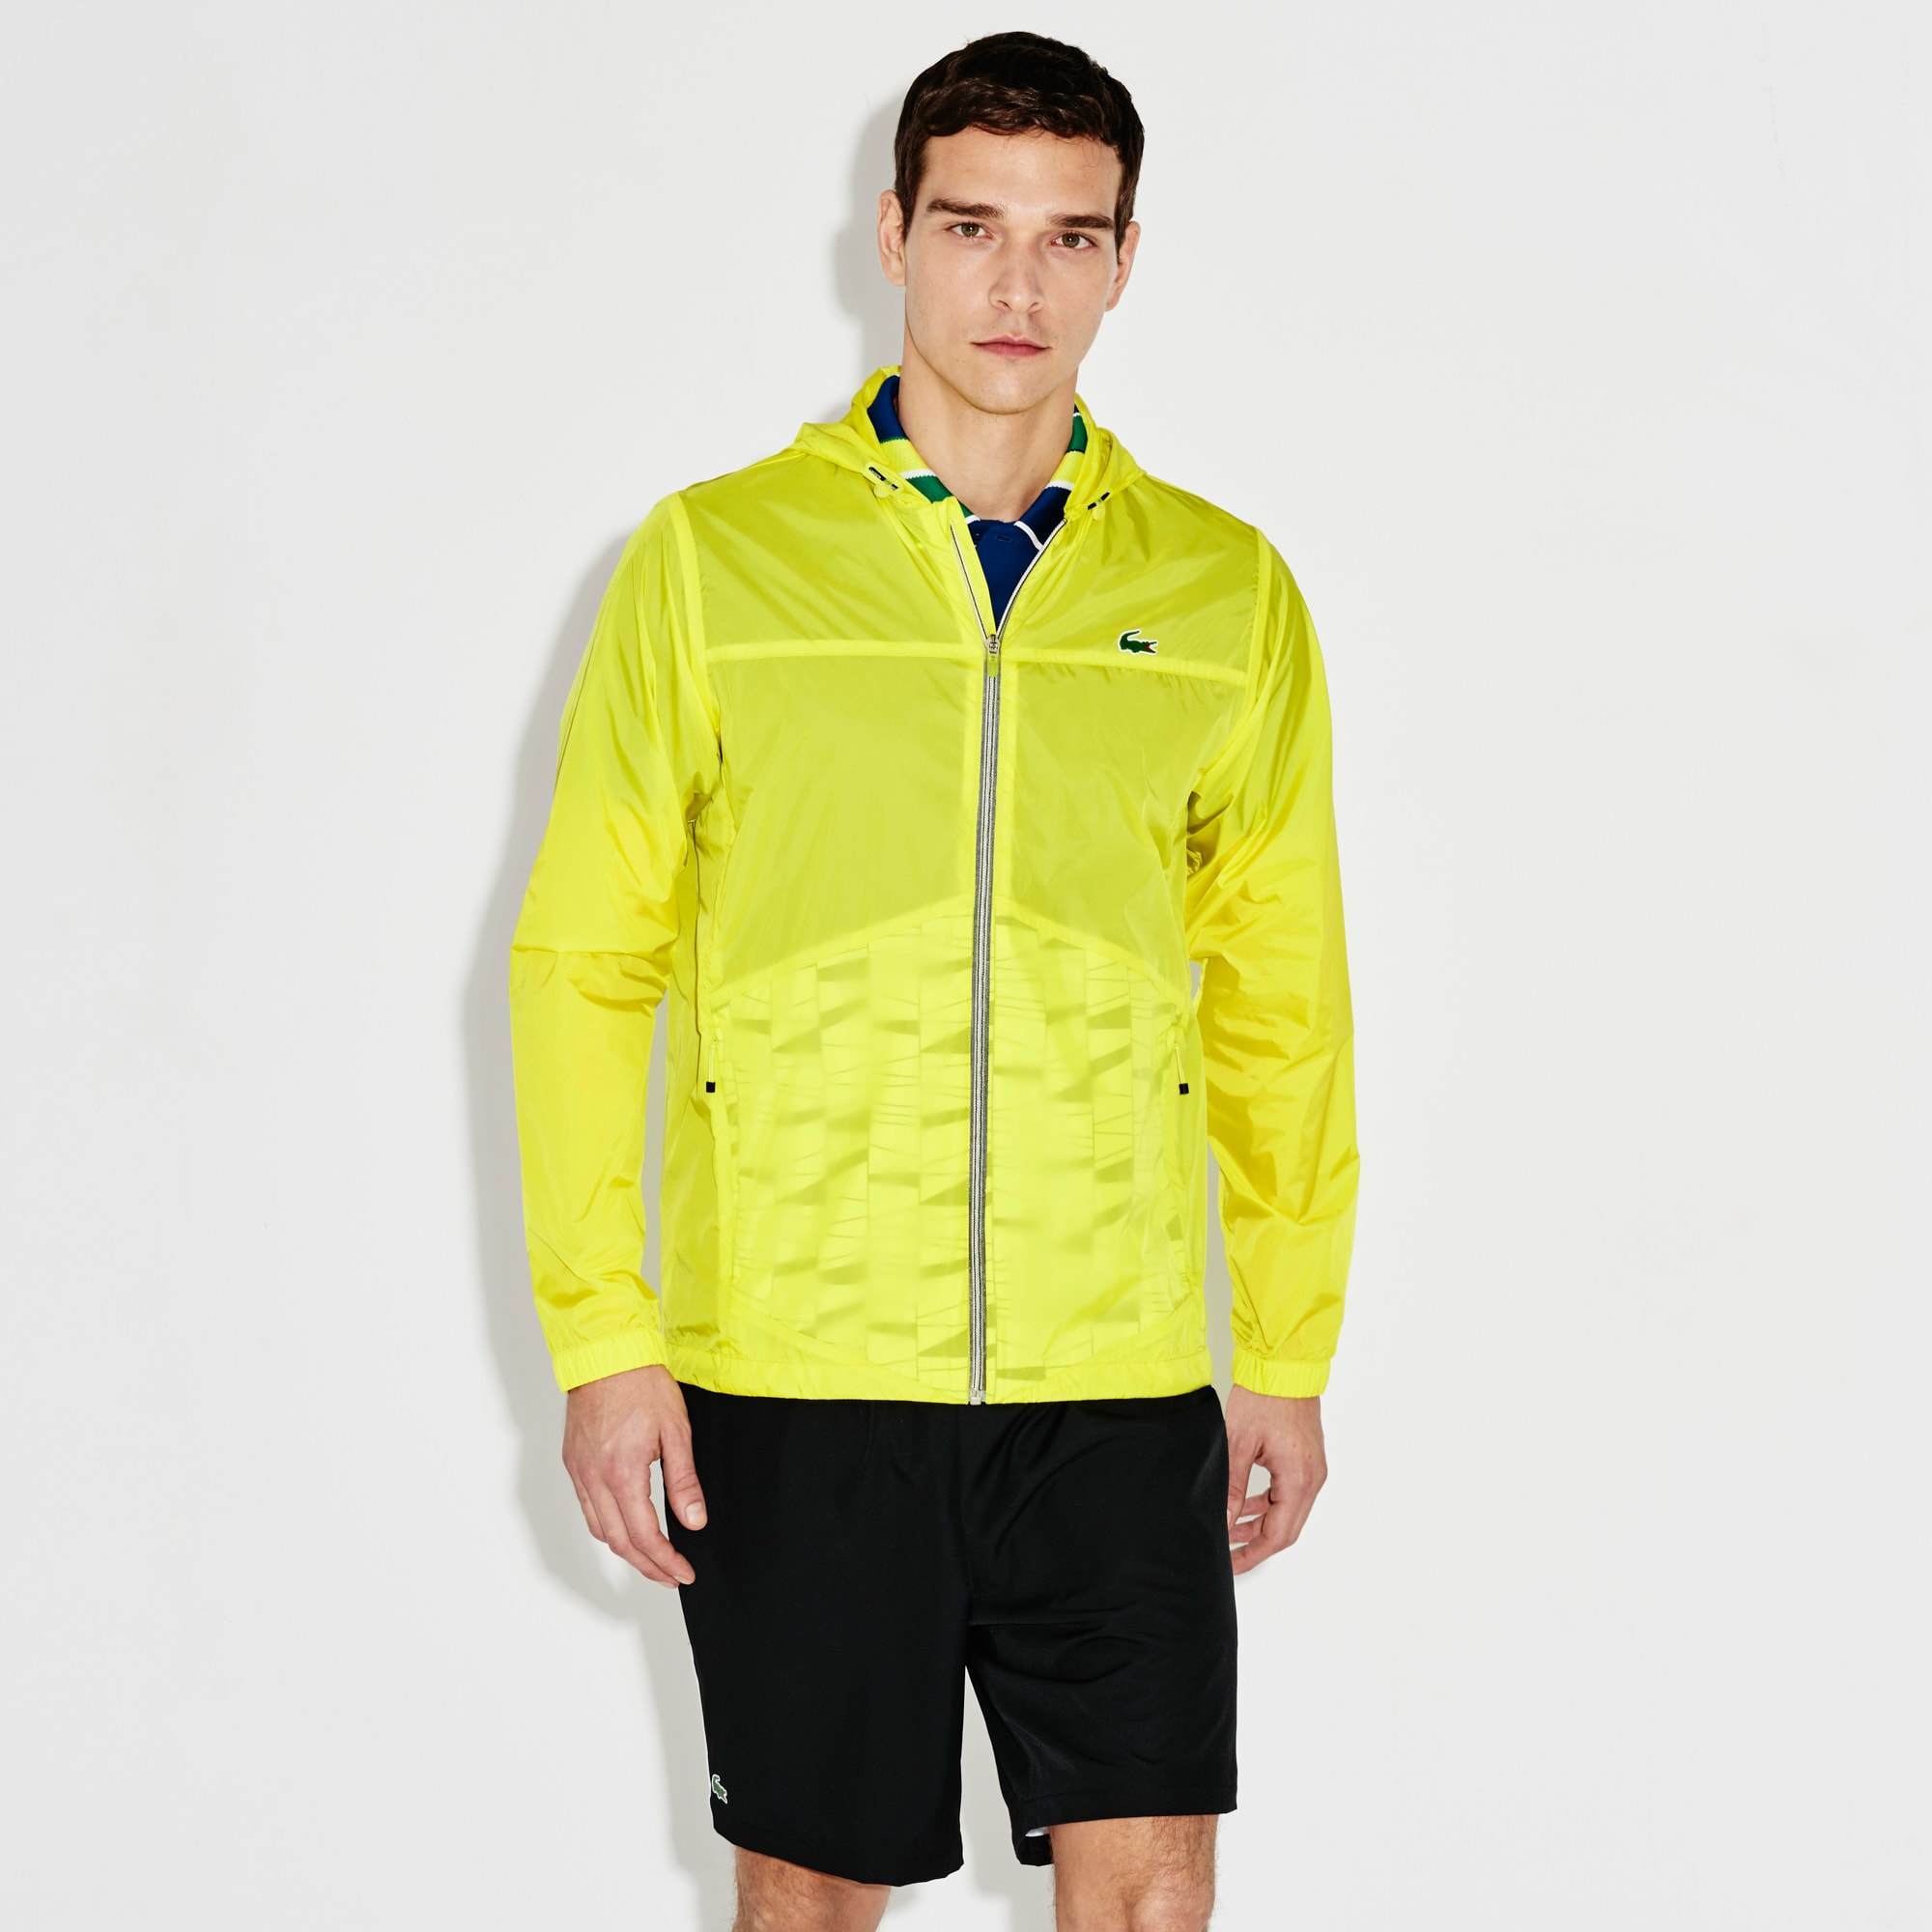 Men's SPORT Hooded Zippered Tennis Rain Jacket